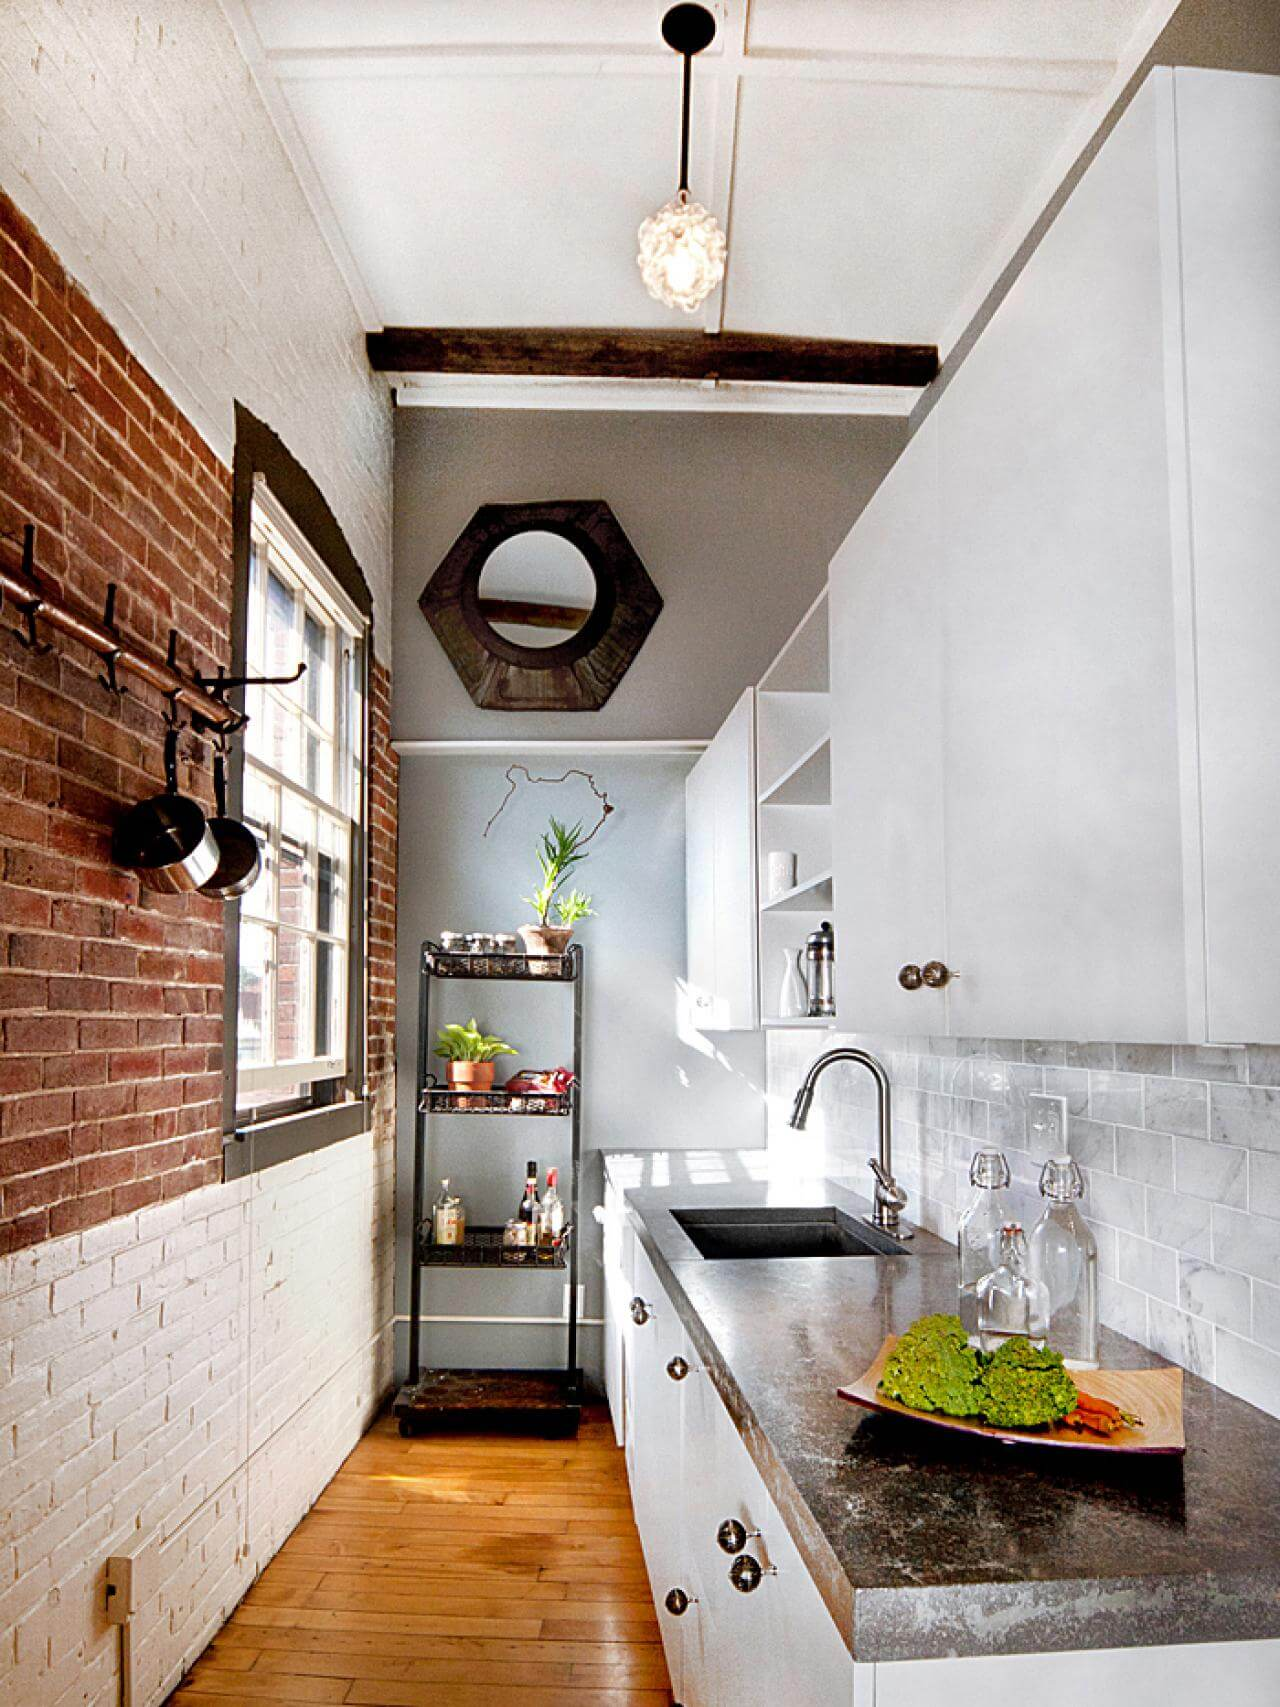 Simple, narrow kitchen cabinet